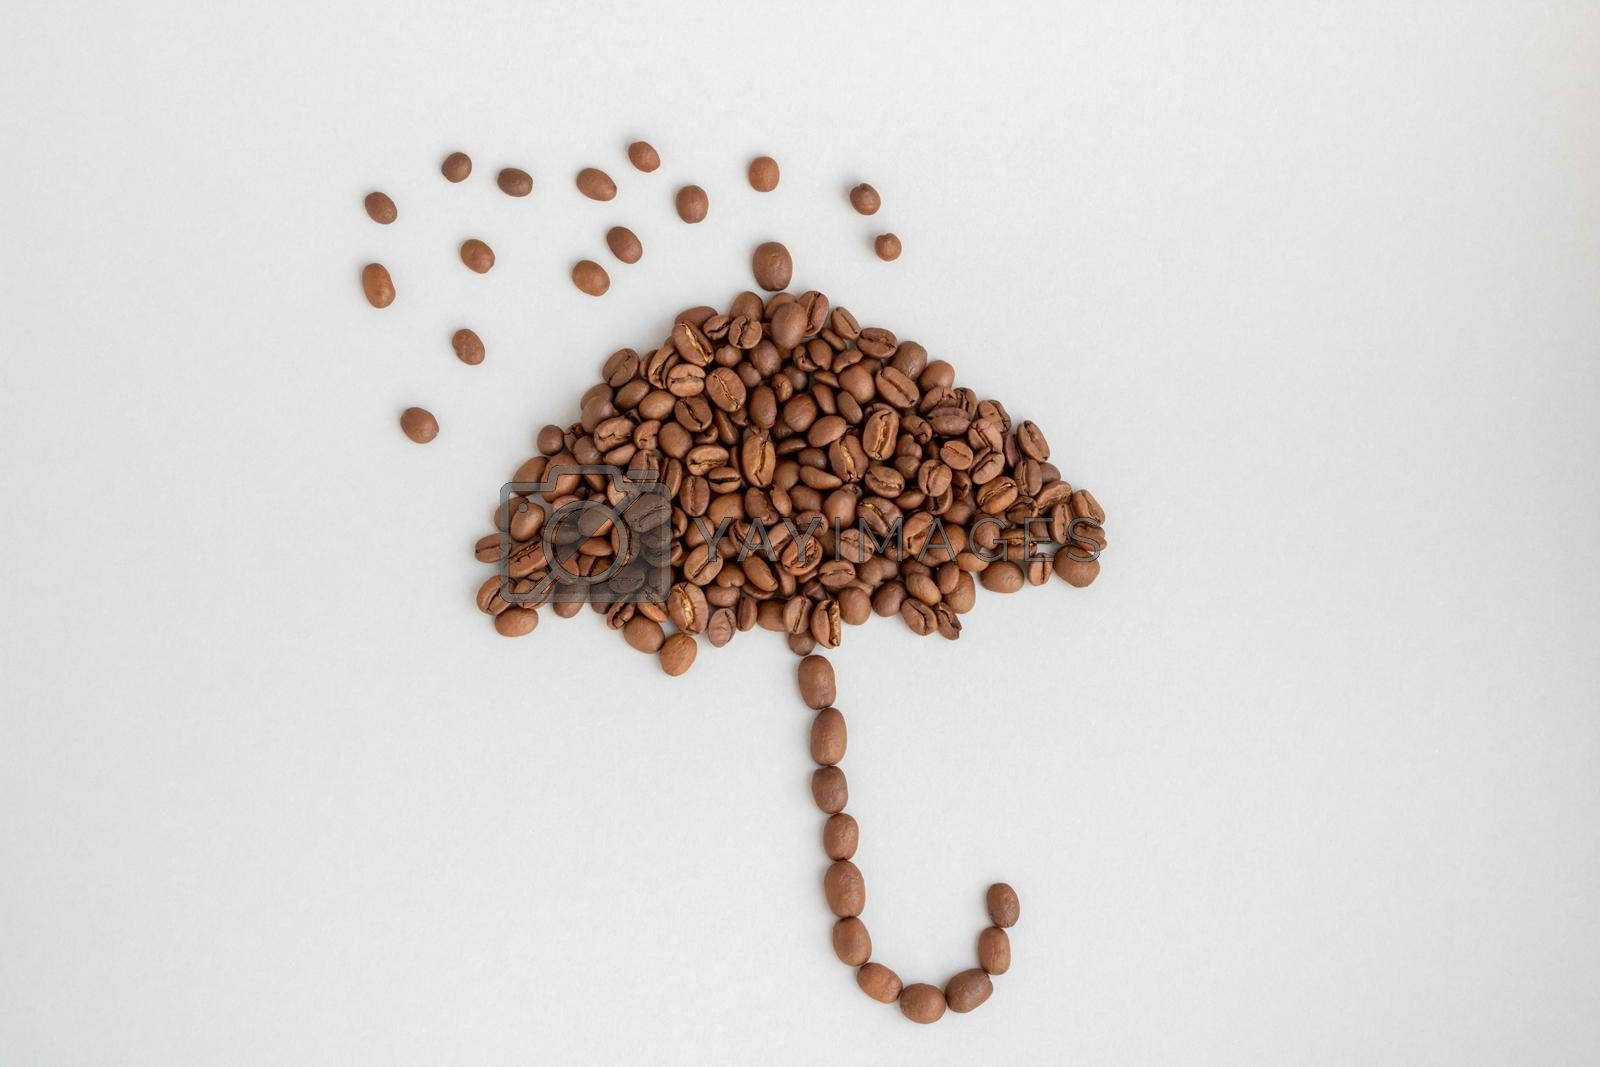 Coffee beans in the shape of an umbrella on a gray background.